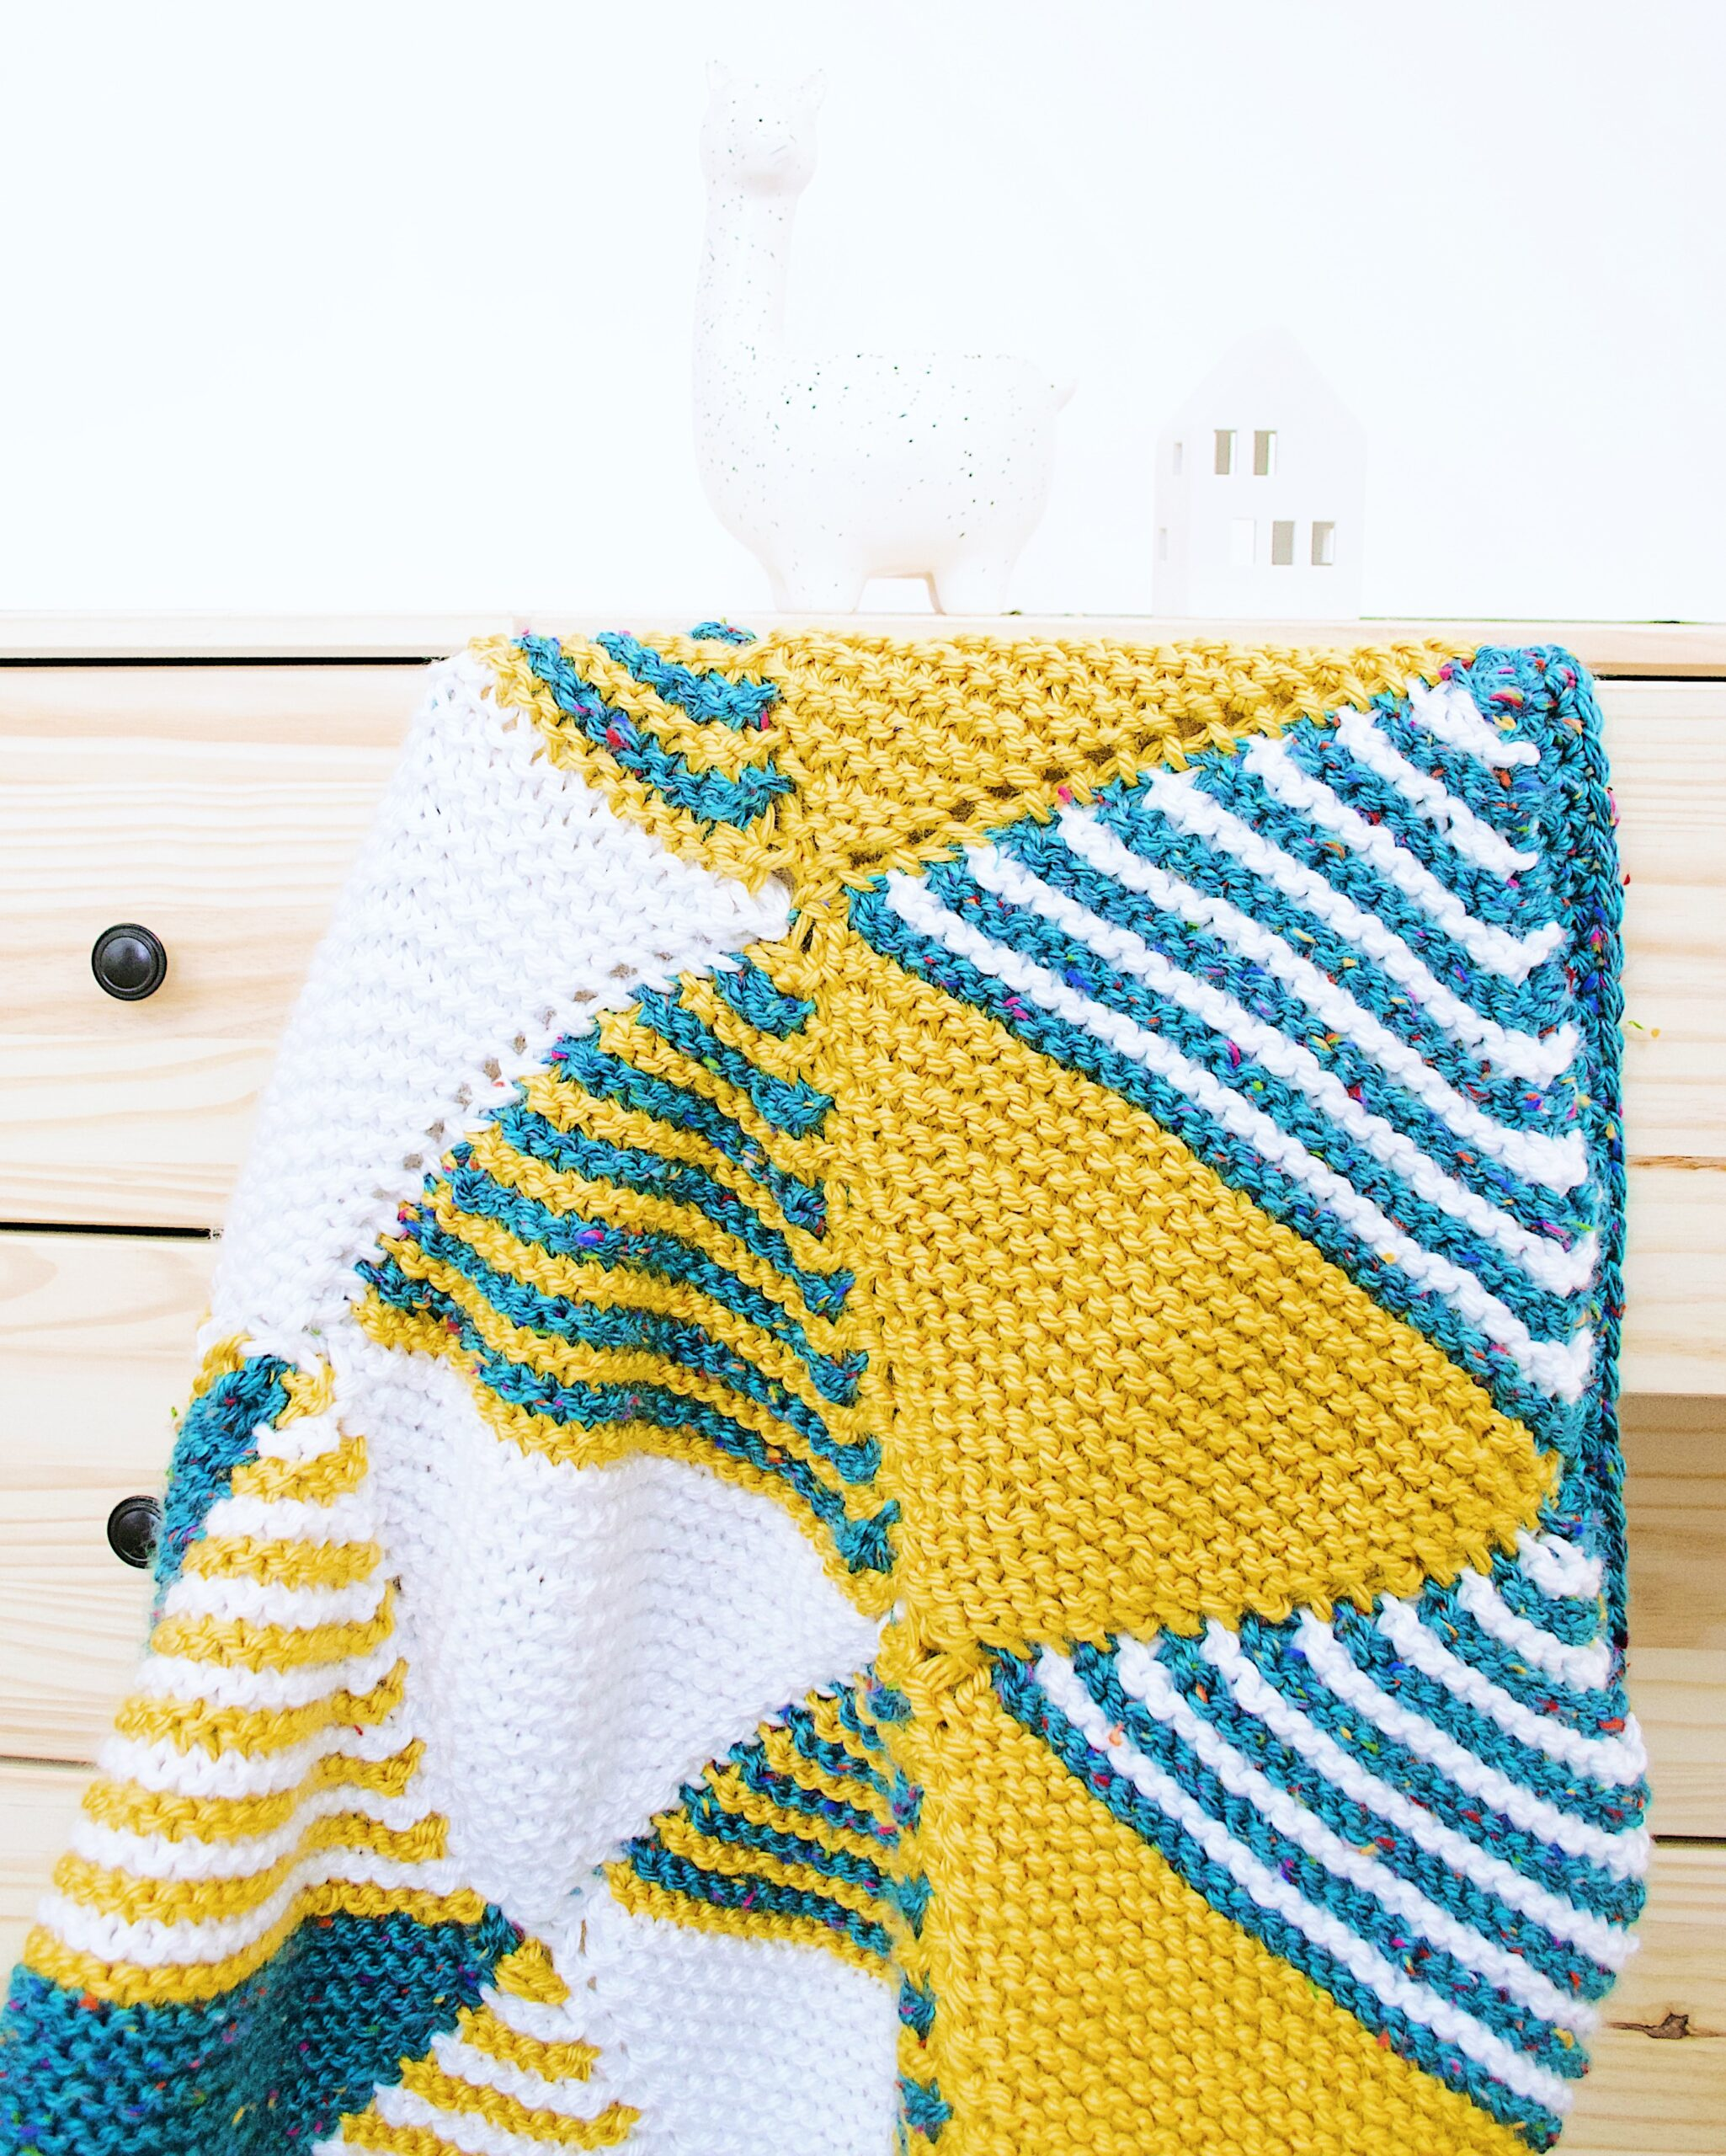 The Knitted Baby Blanket draped over a wooden set of drawers